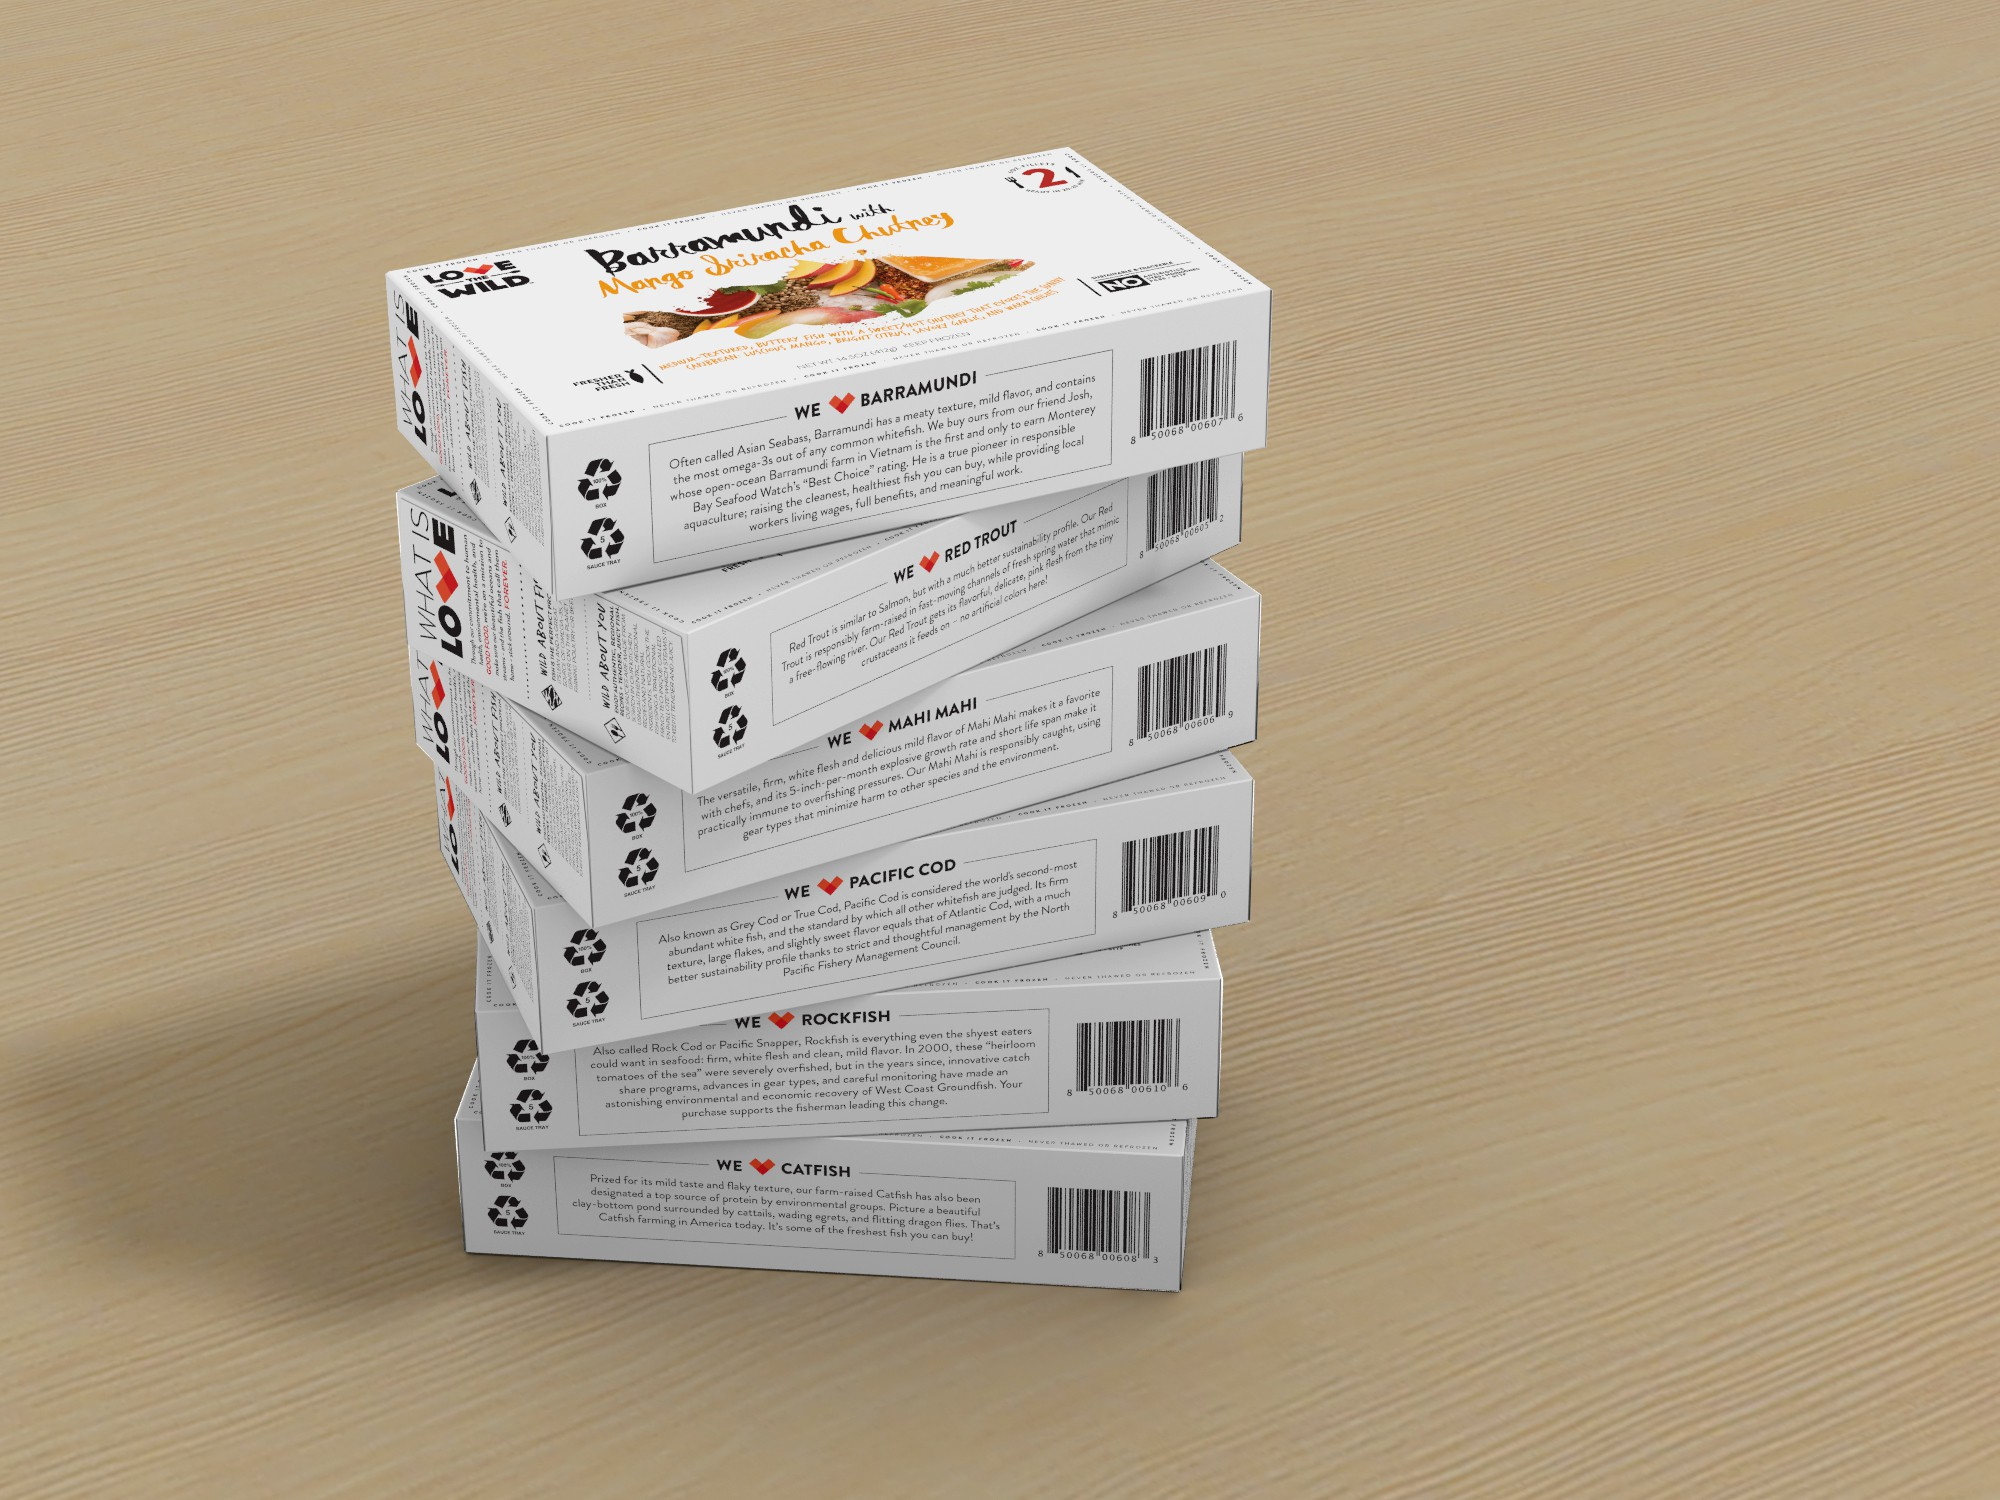 3D renderings of our boxes